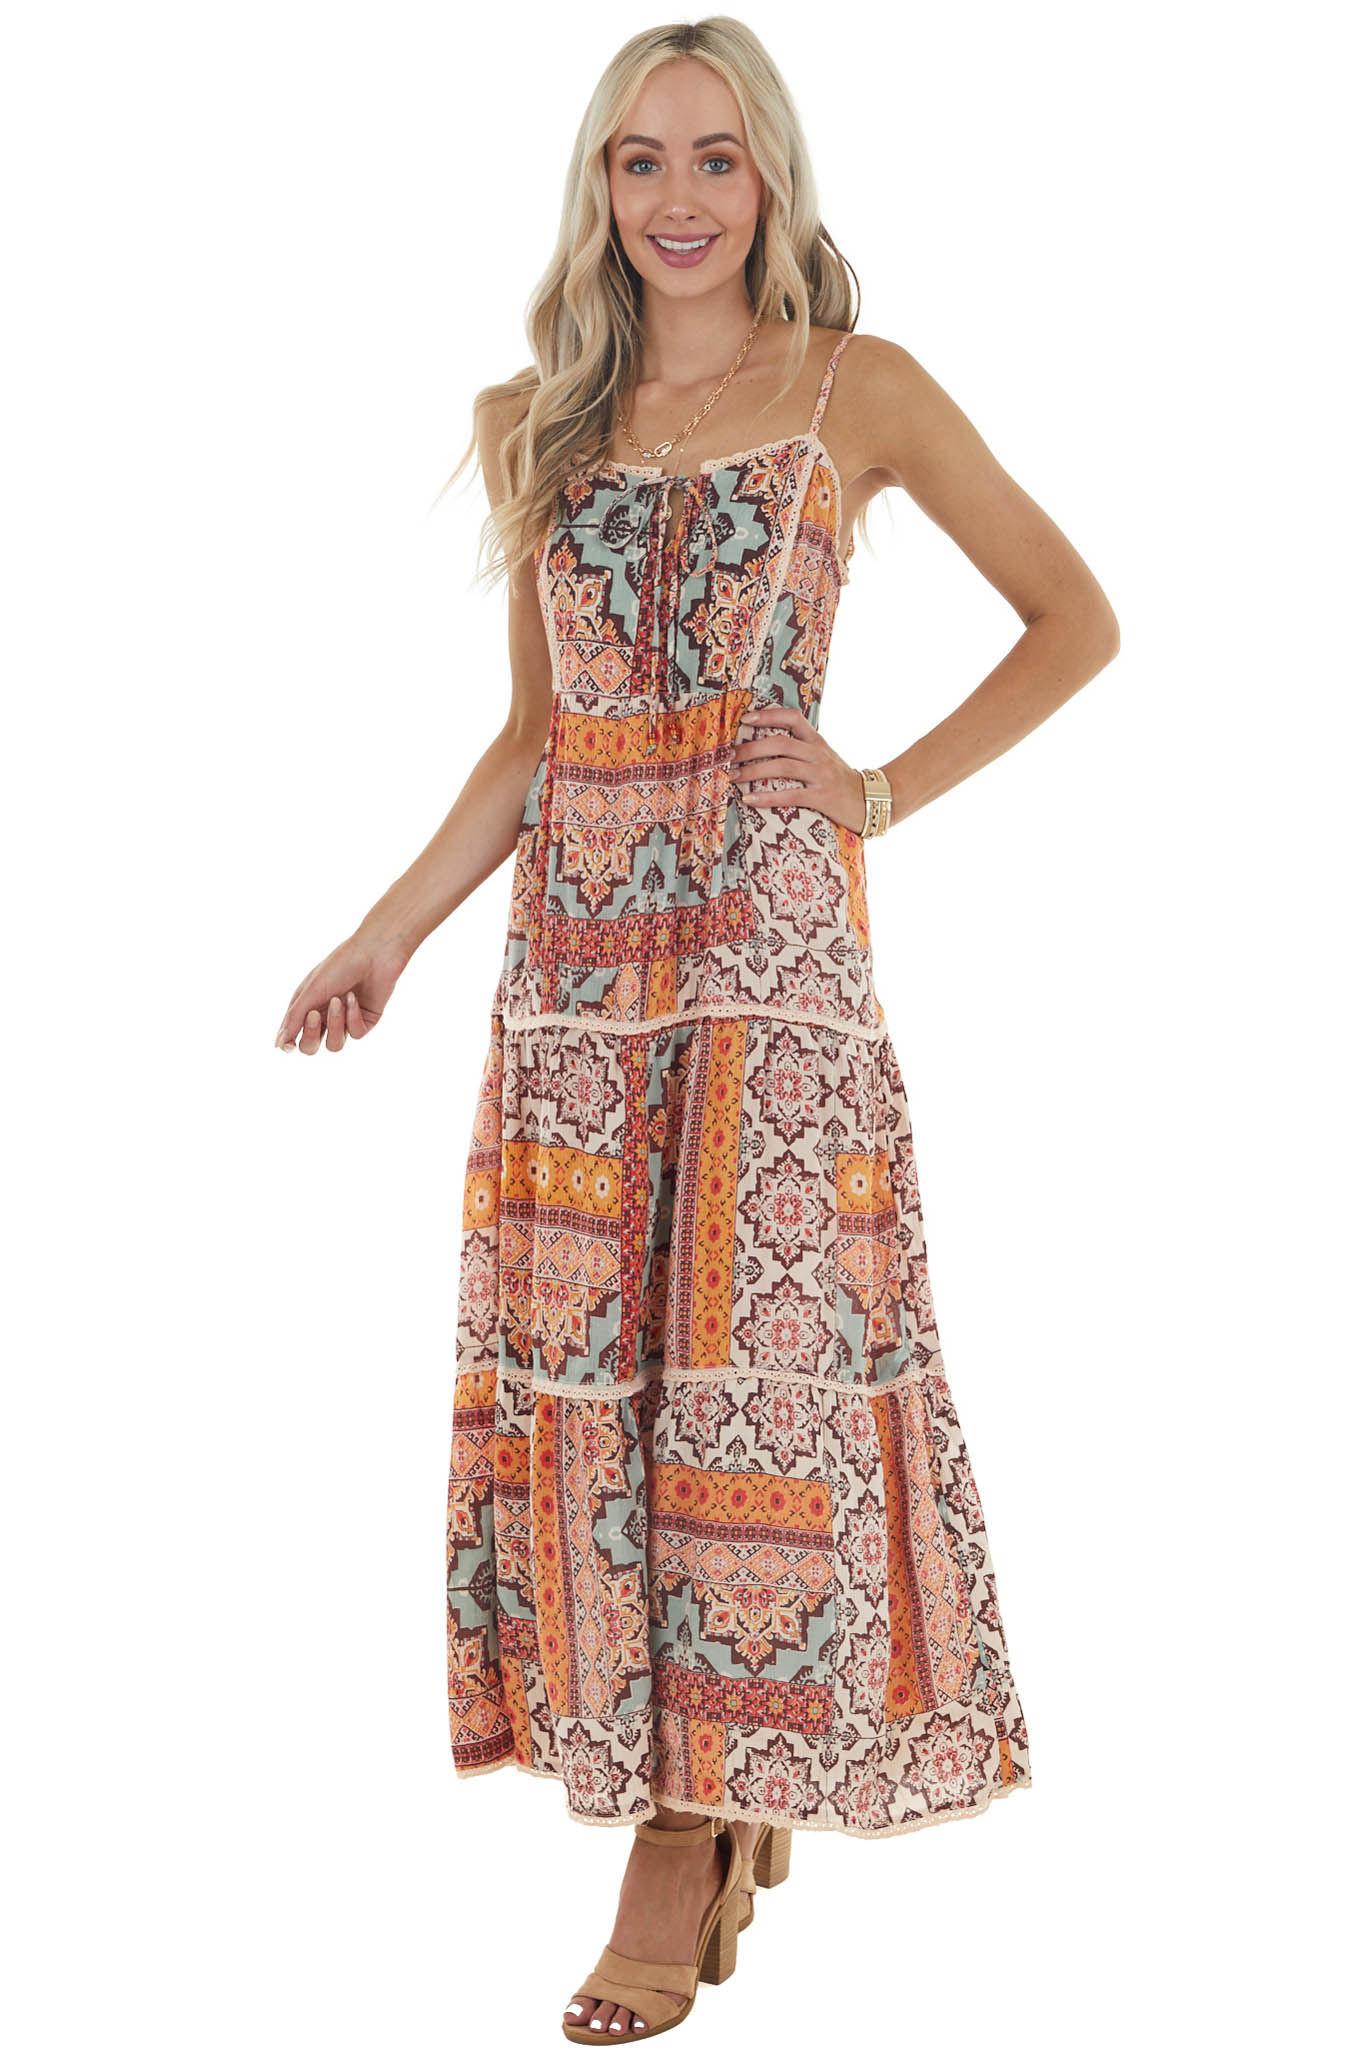 Marigold and Teal Printed Sleeveless Lace Trim Maxi Dress